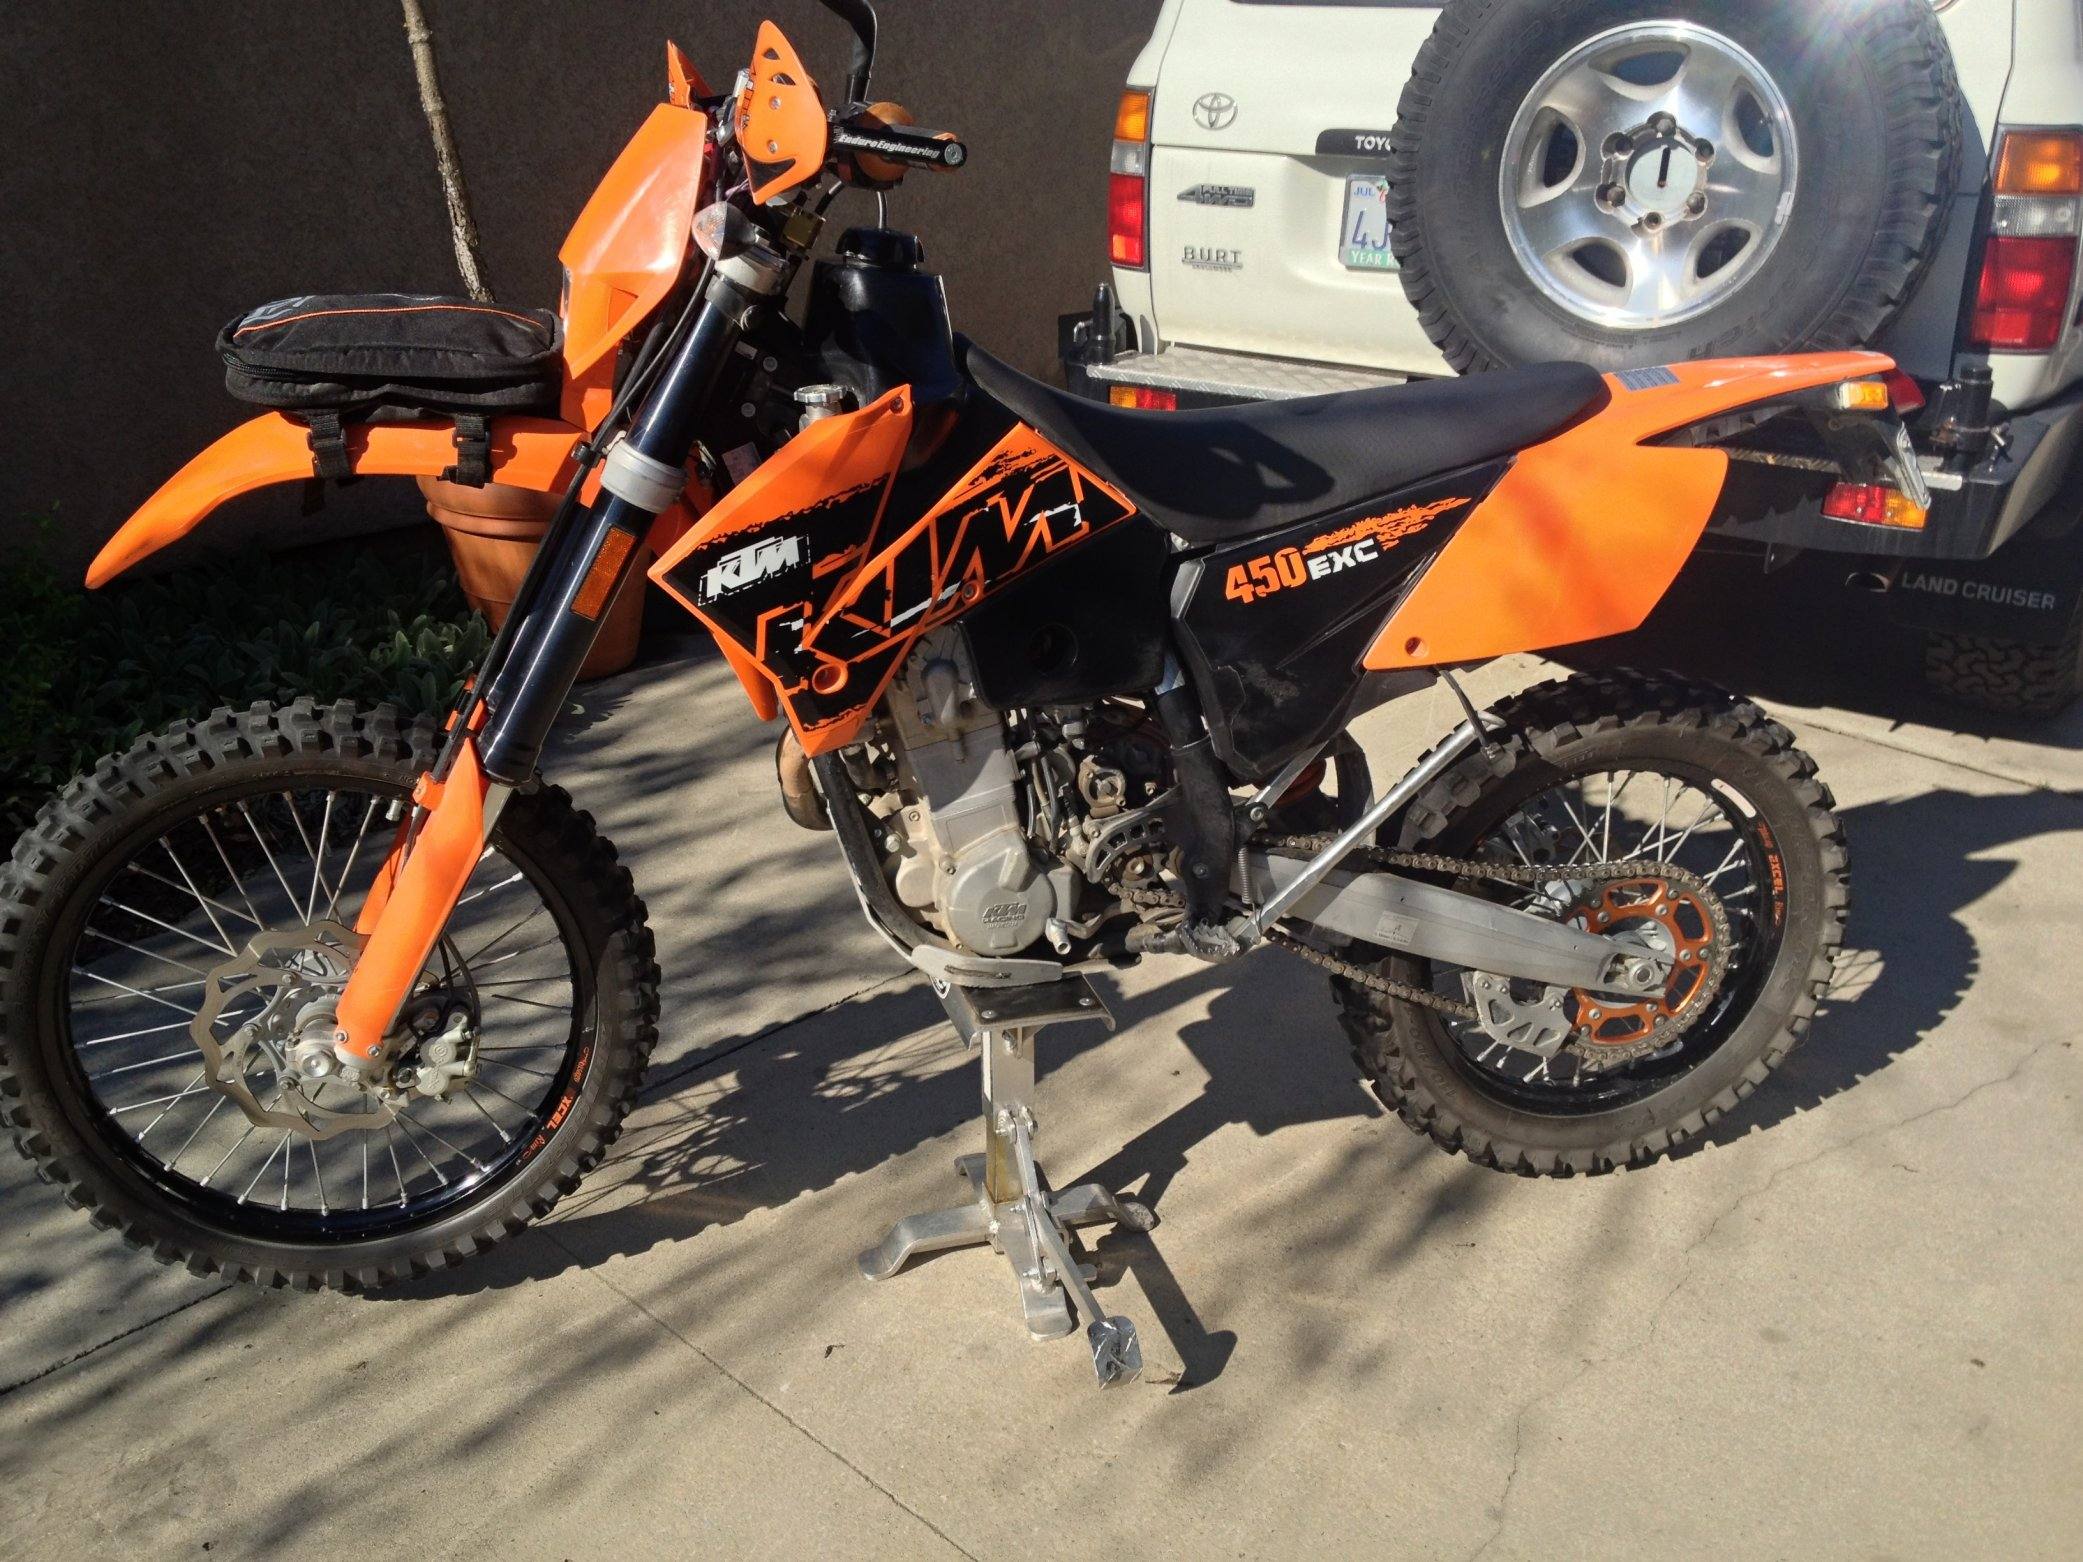 For Sale 2007 Ktm 450exc California Street Legal